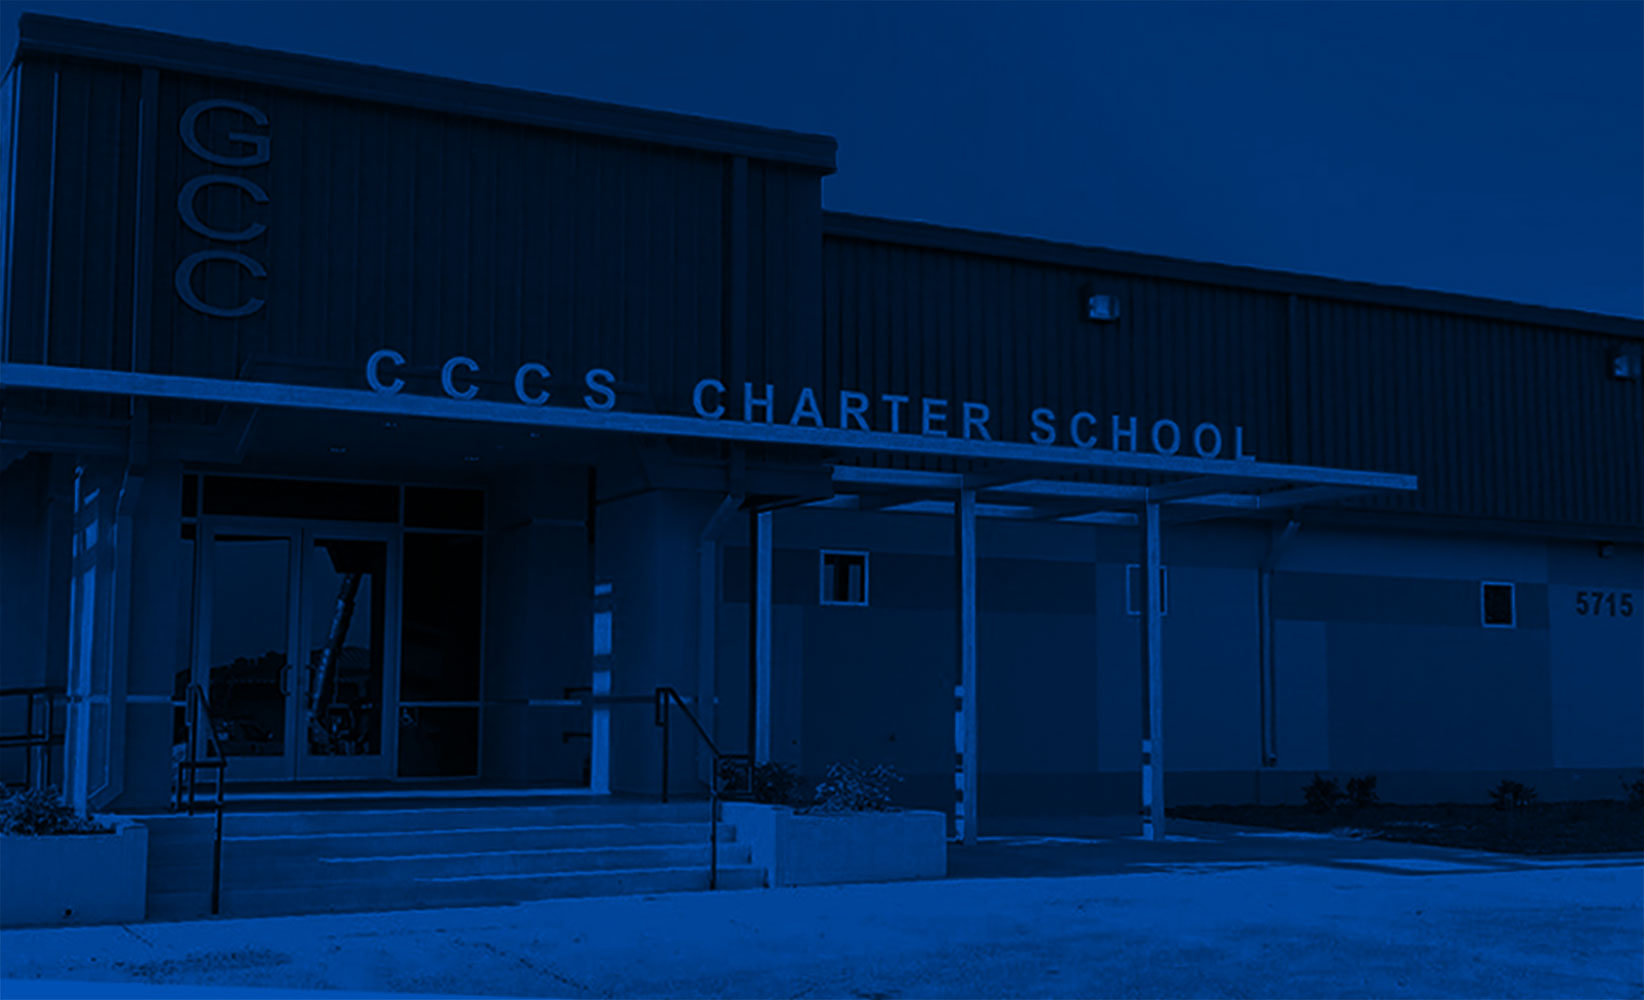 Location - CCCS Charter School